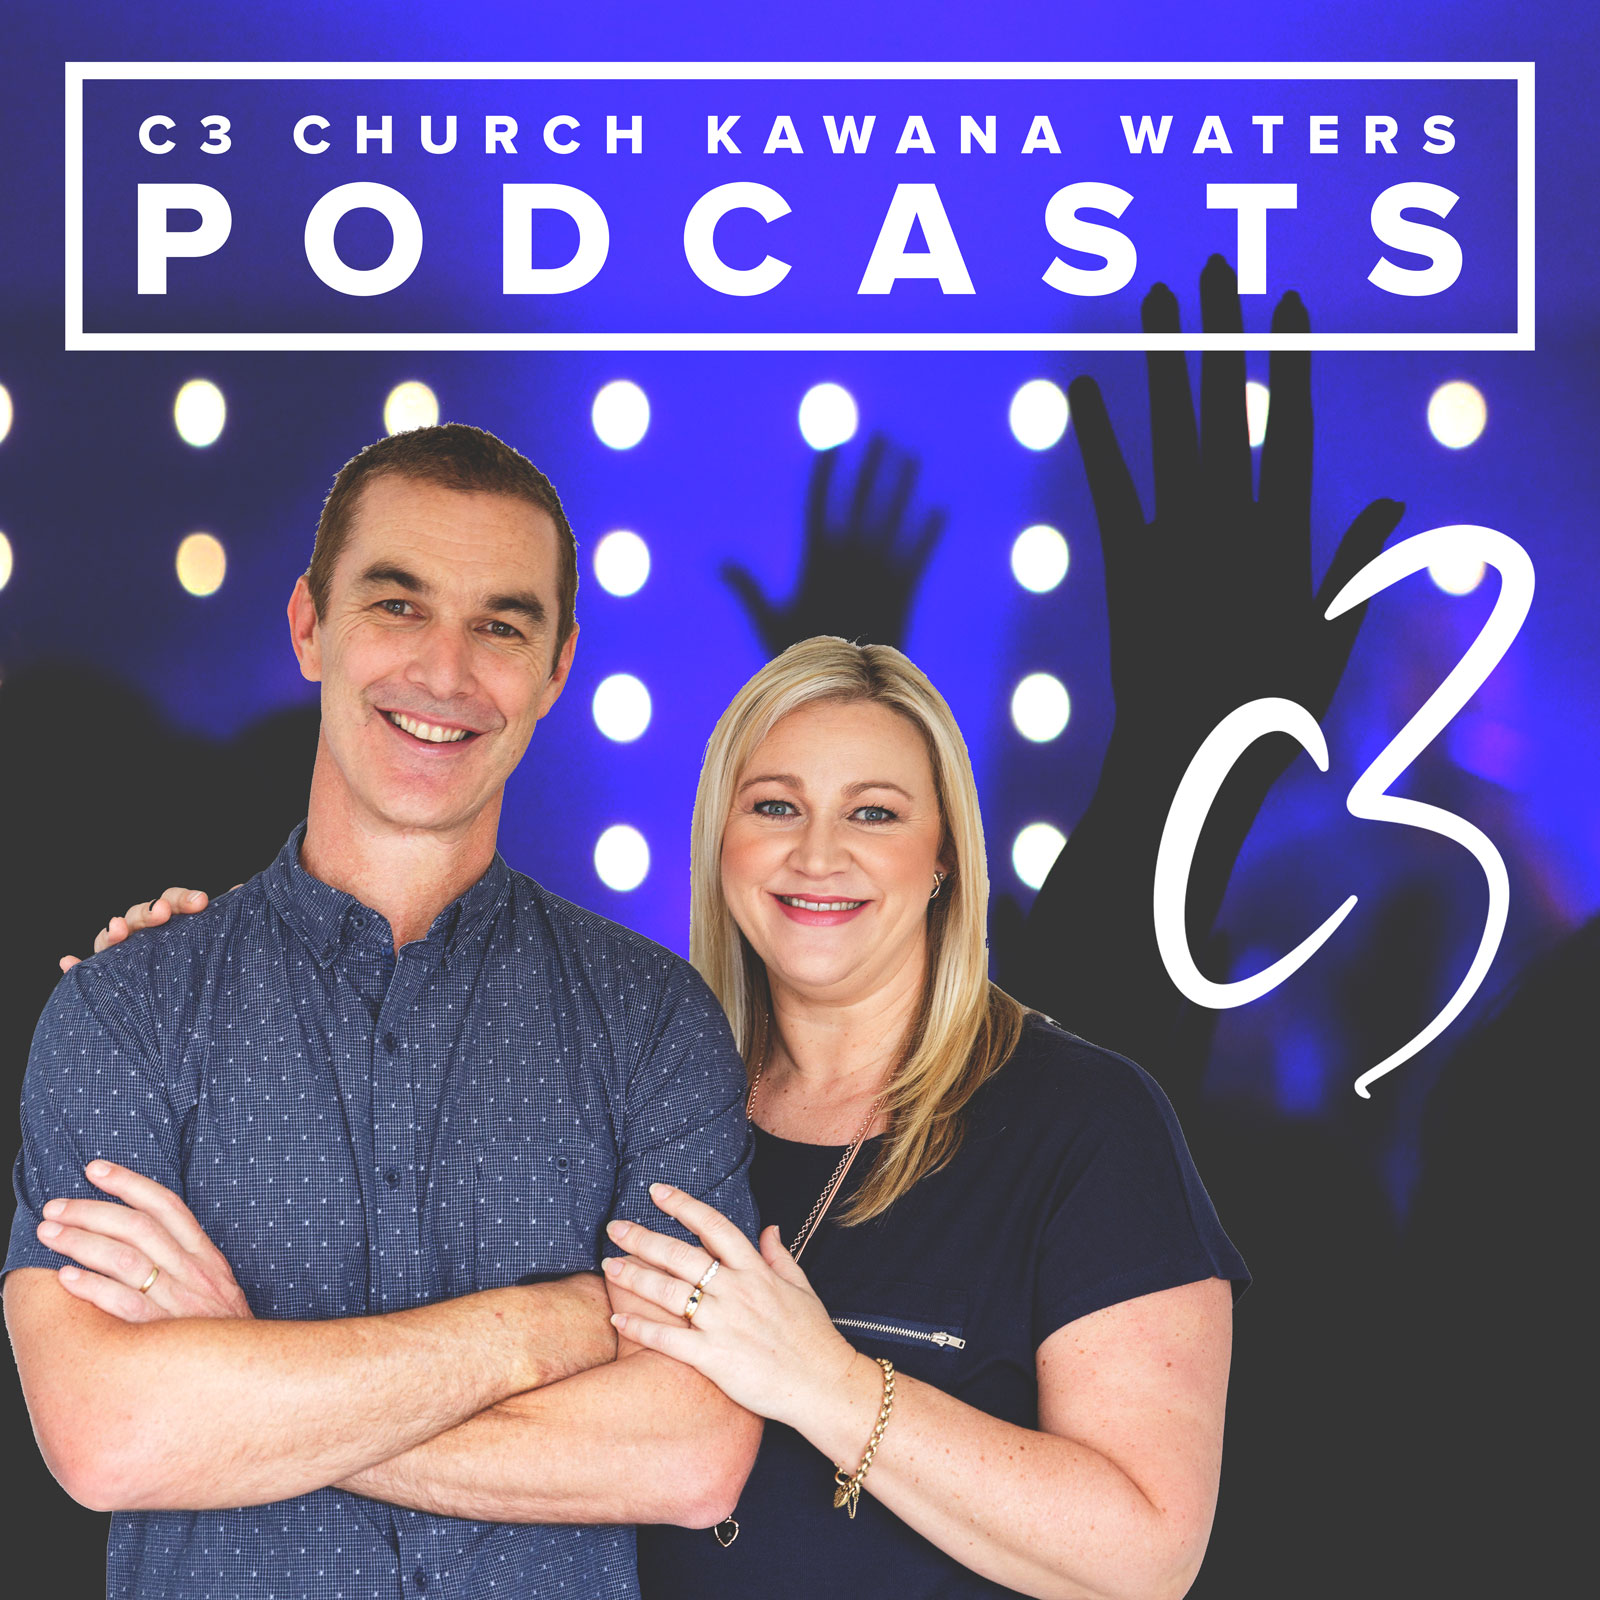 C3 Church Kawana Waters Podcast